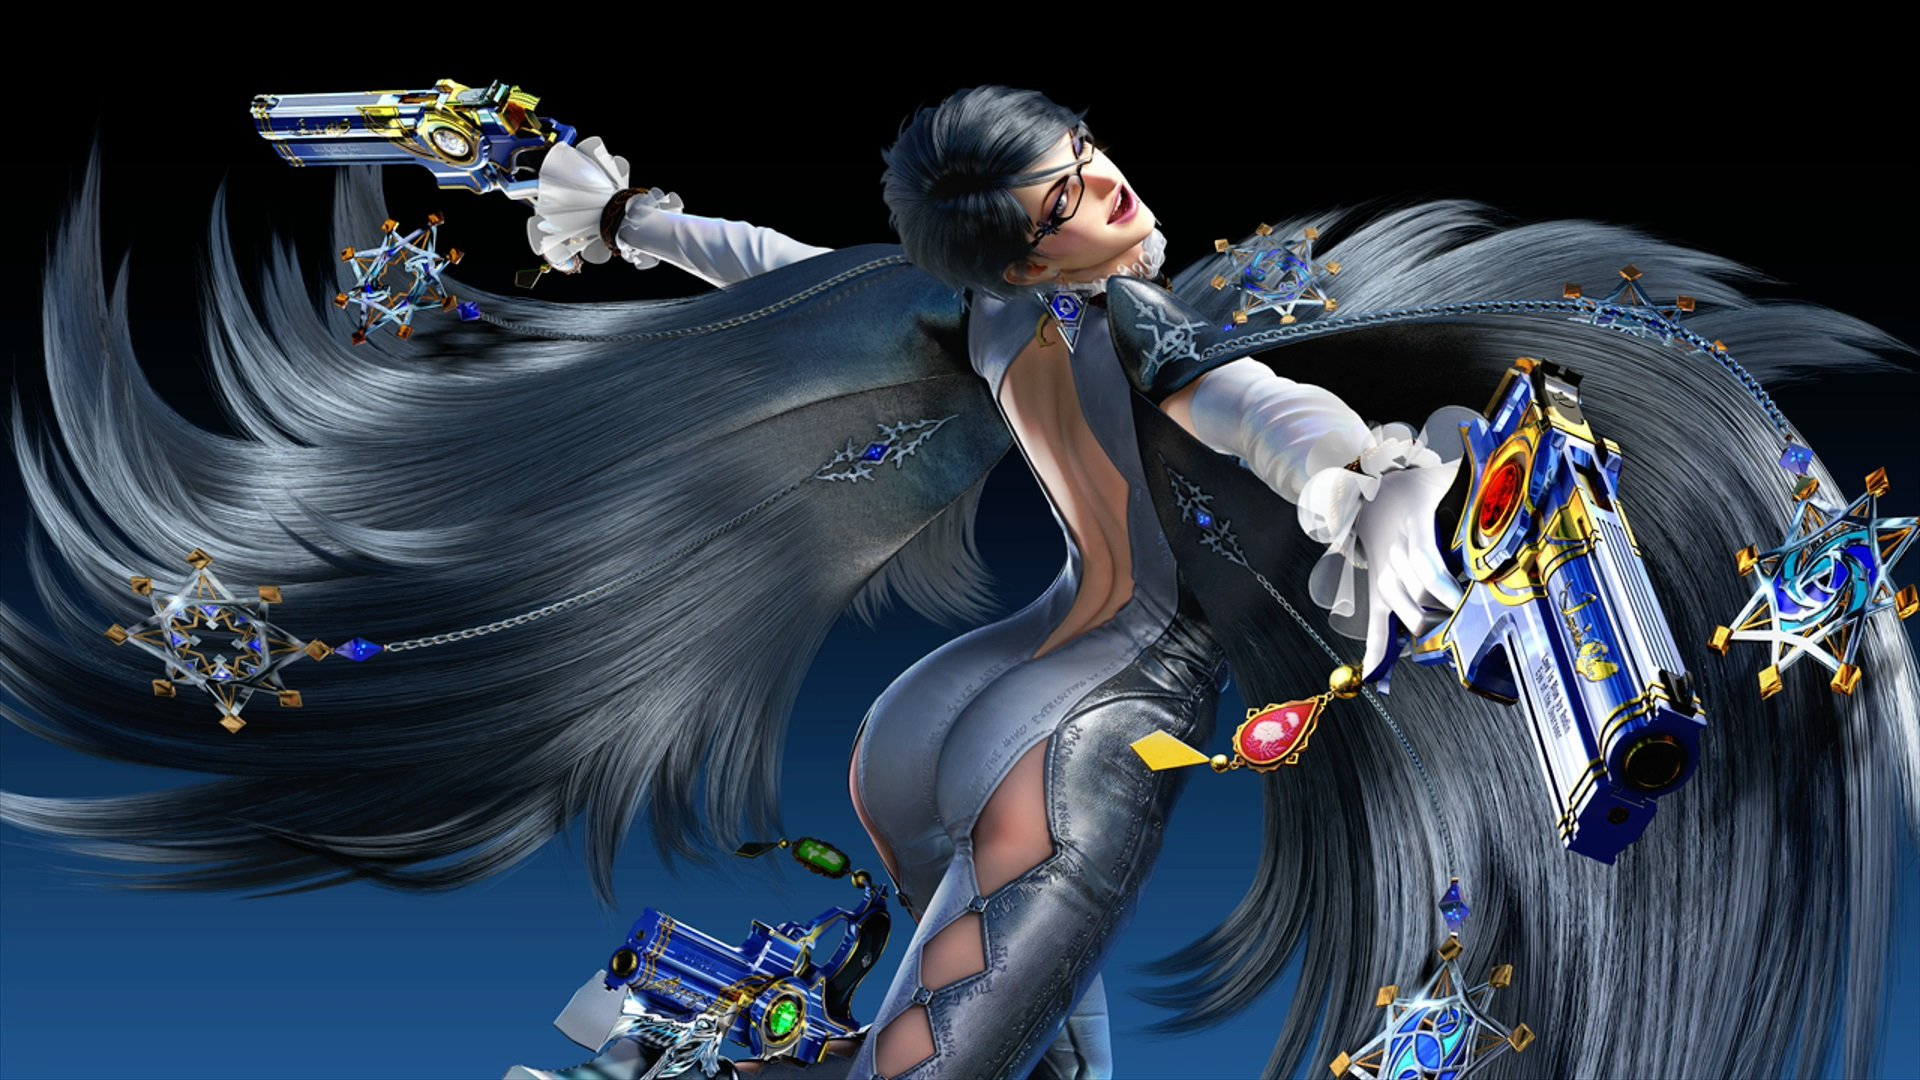 These videos from Platinum could very well be teasing Bayonetta 3 screenshot